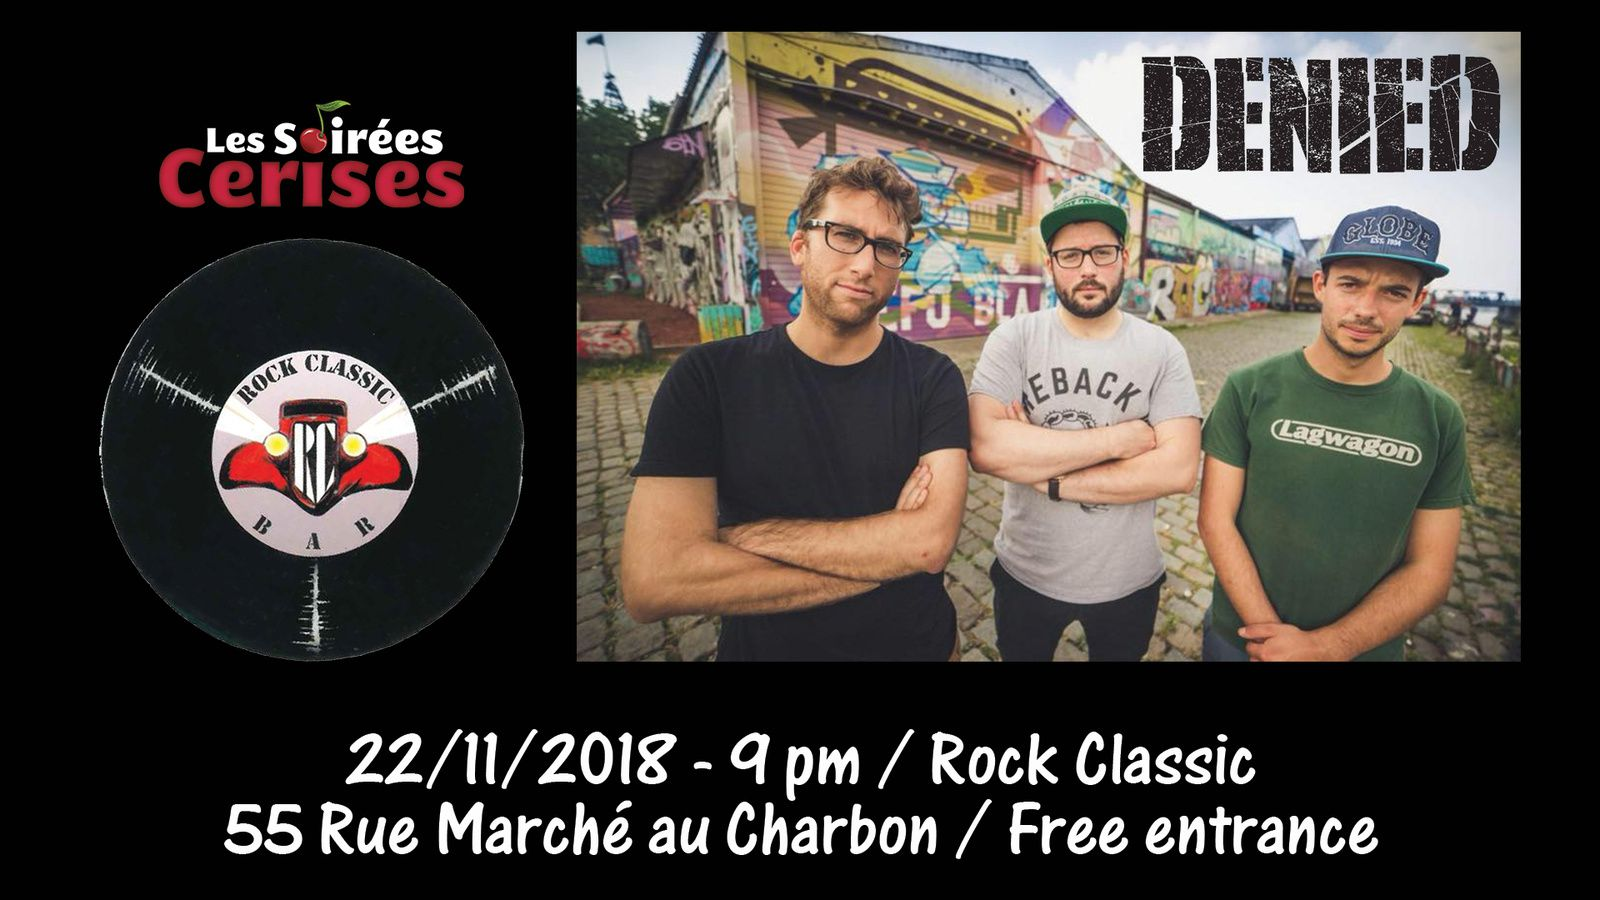 ▶ DENIED @ Rock Classic - 22/11/2018 - 21h00 - Entrée gratuite / Free entrance